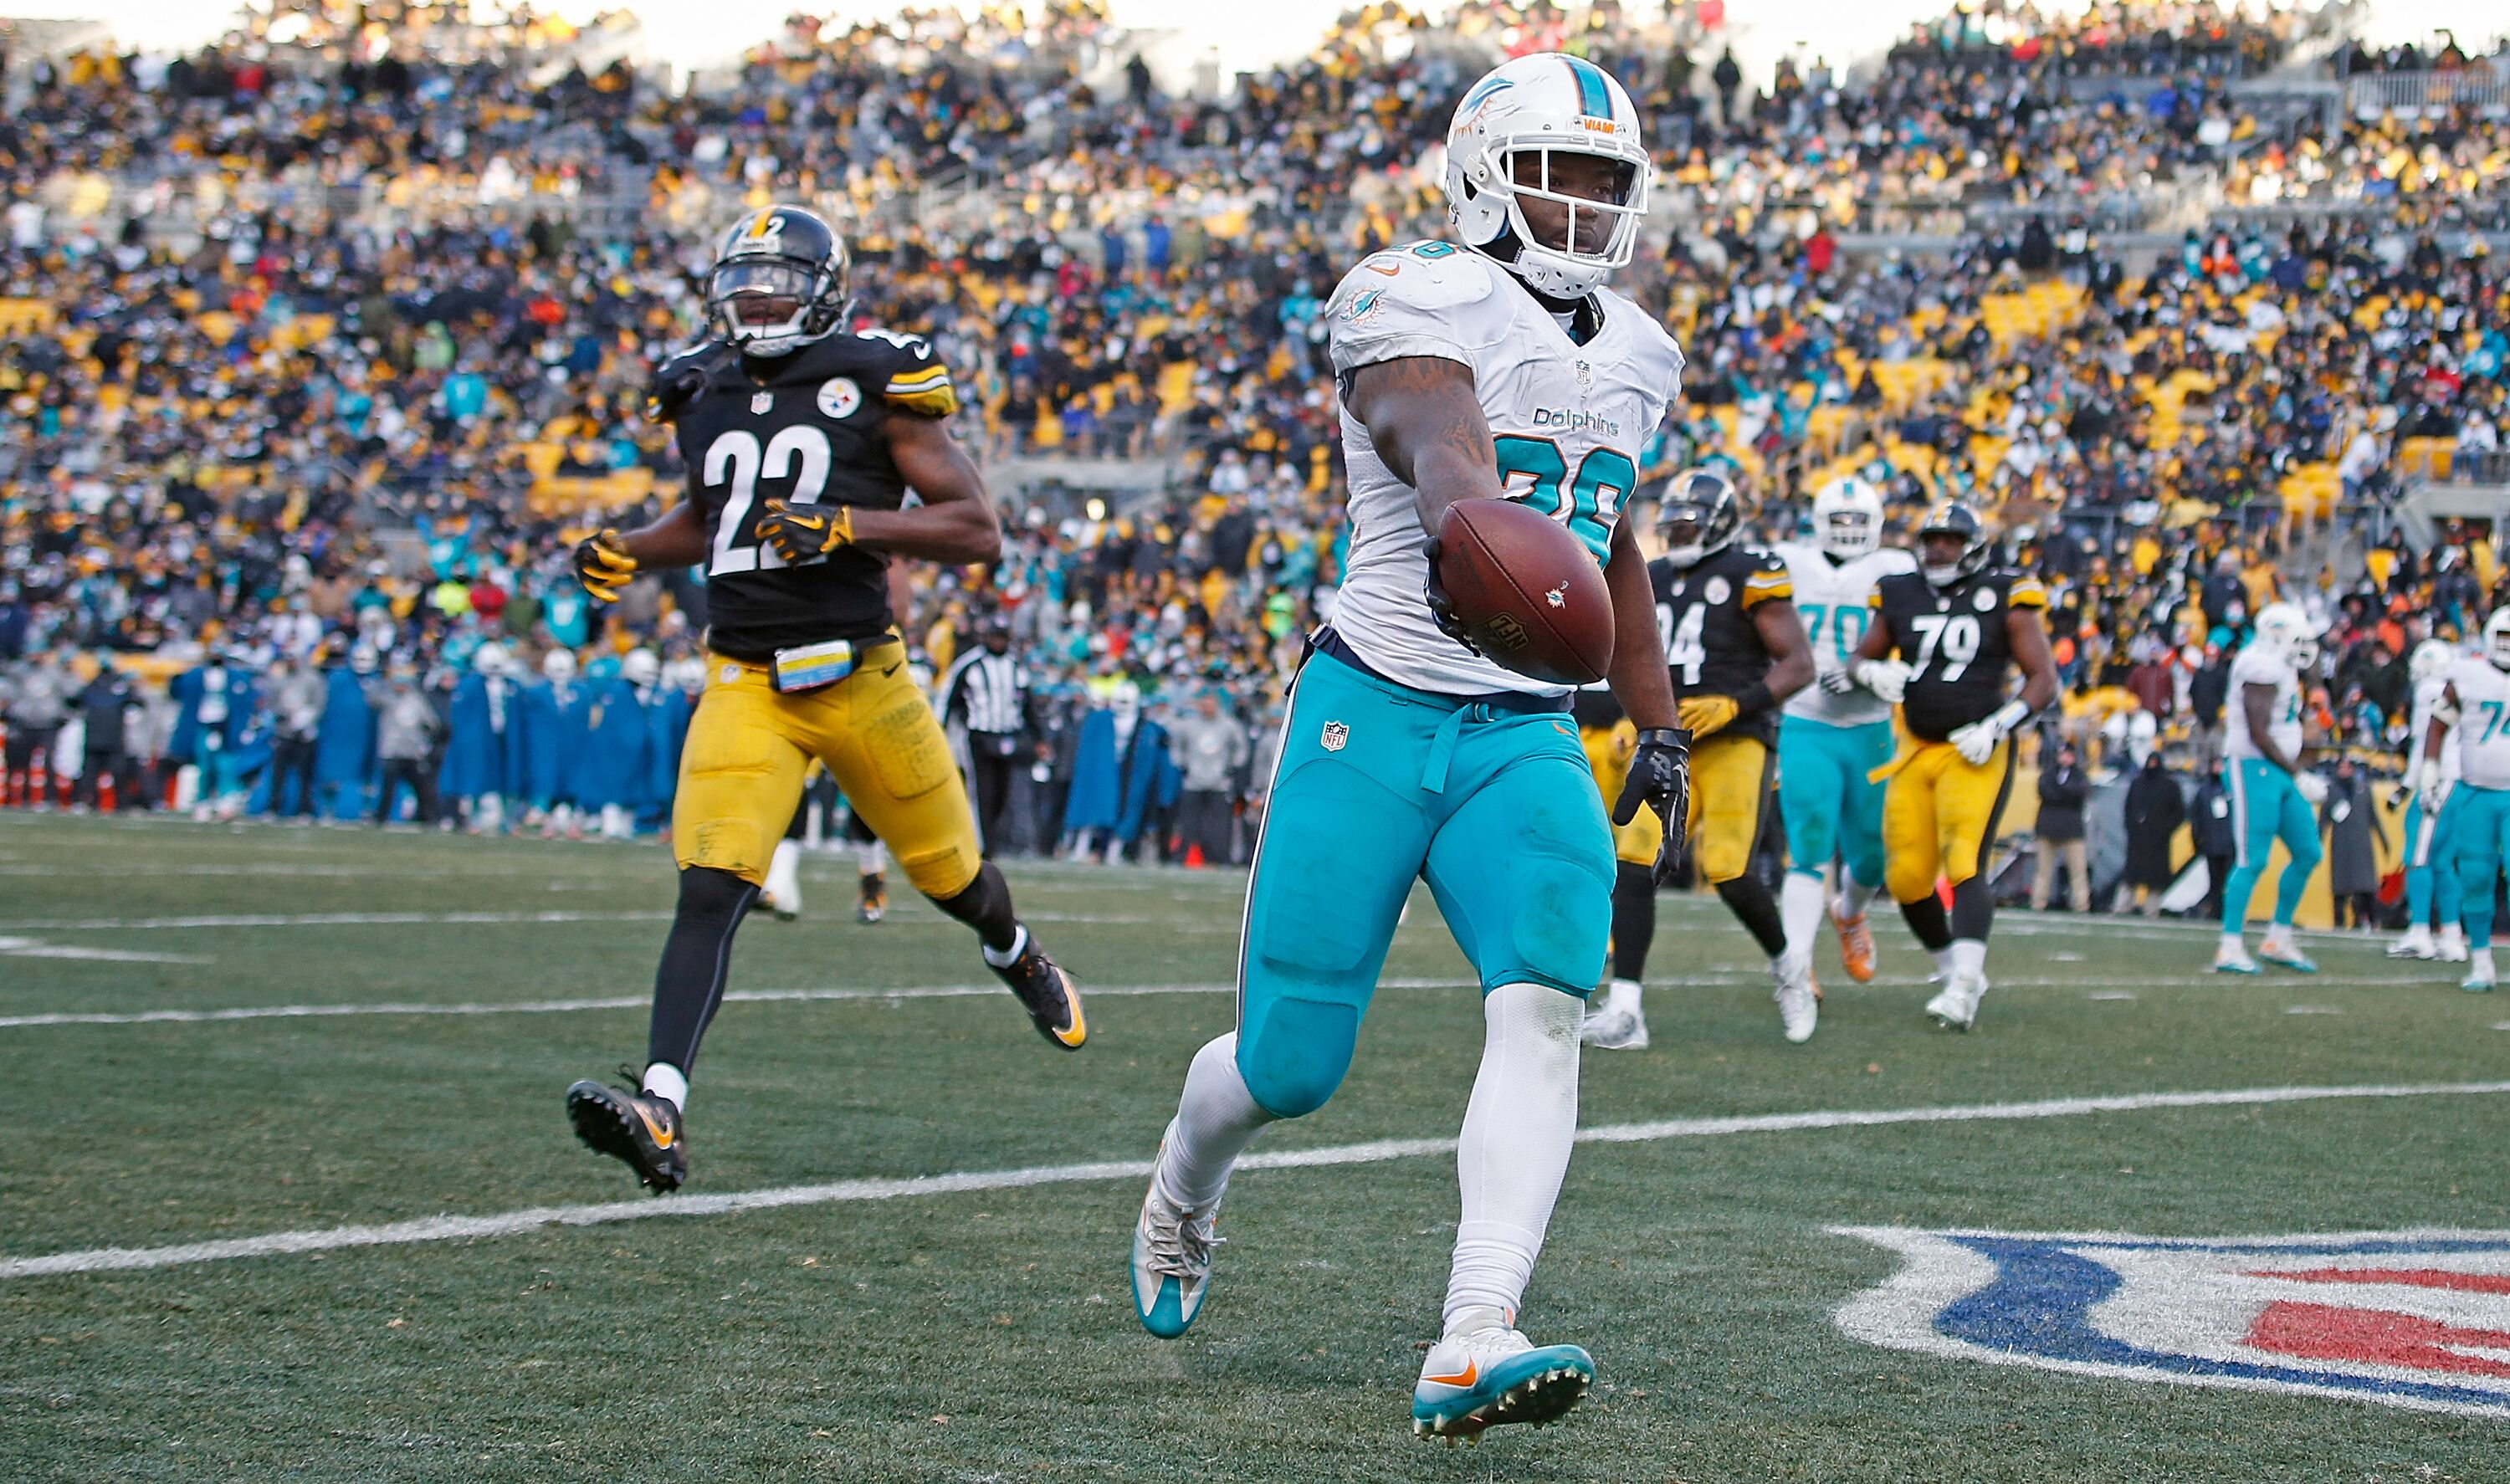 631233938-wild-card-round-miami-dolphins-v-pittsburgh-steelers.jpg